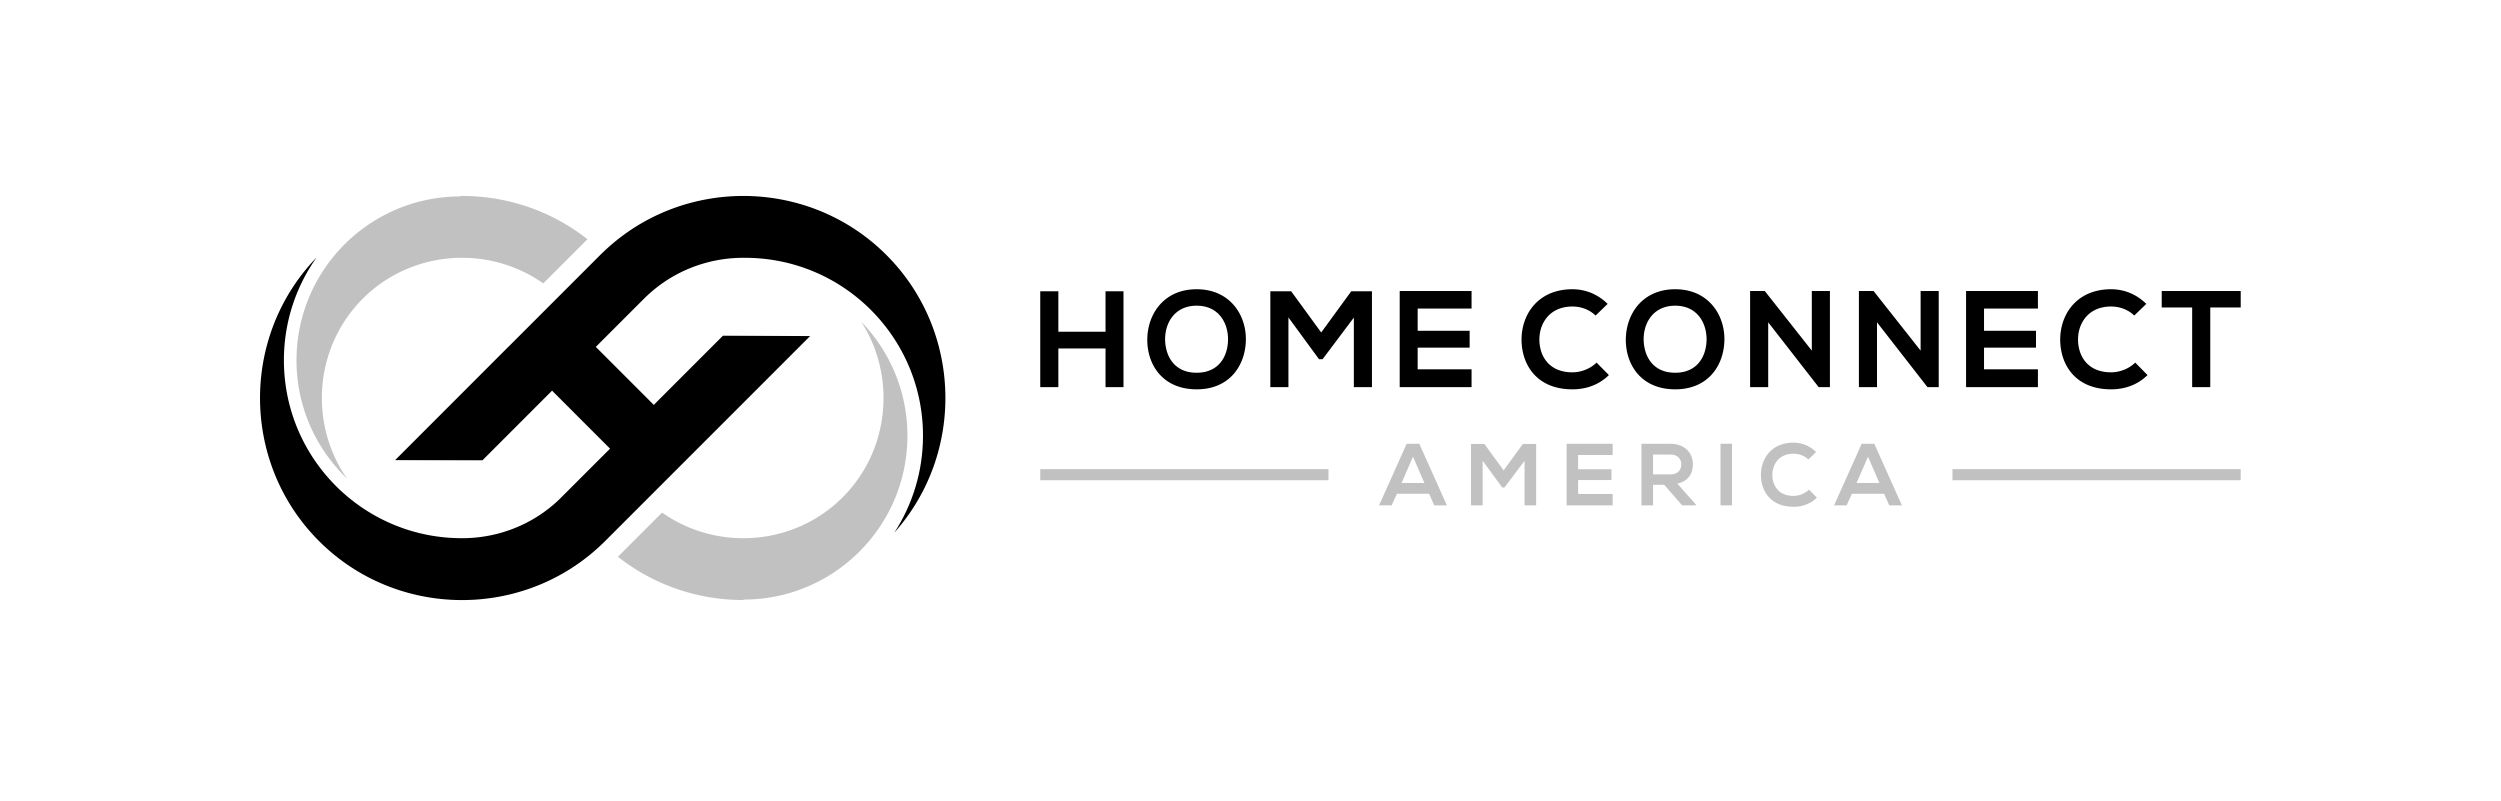 Home Connect America